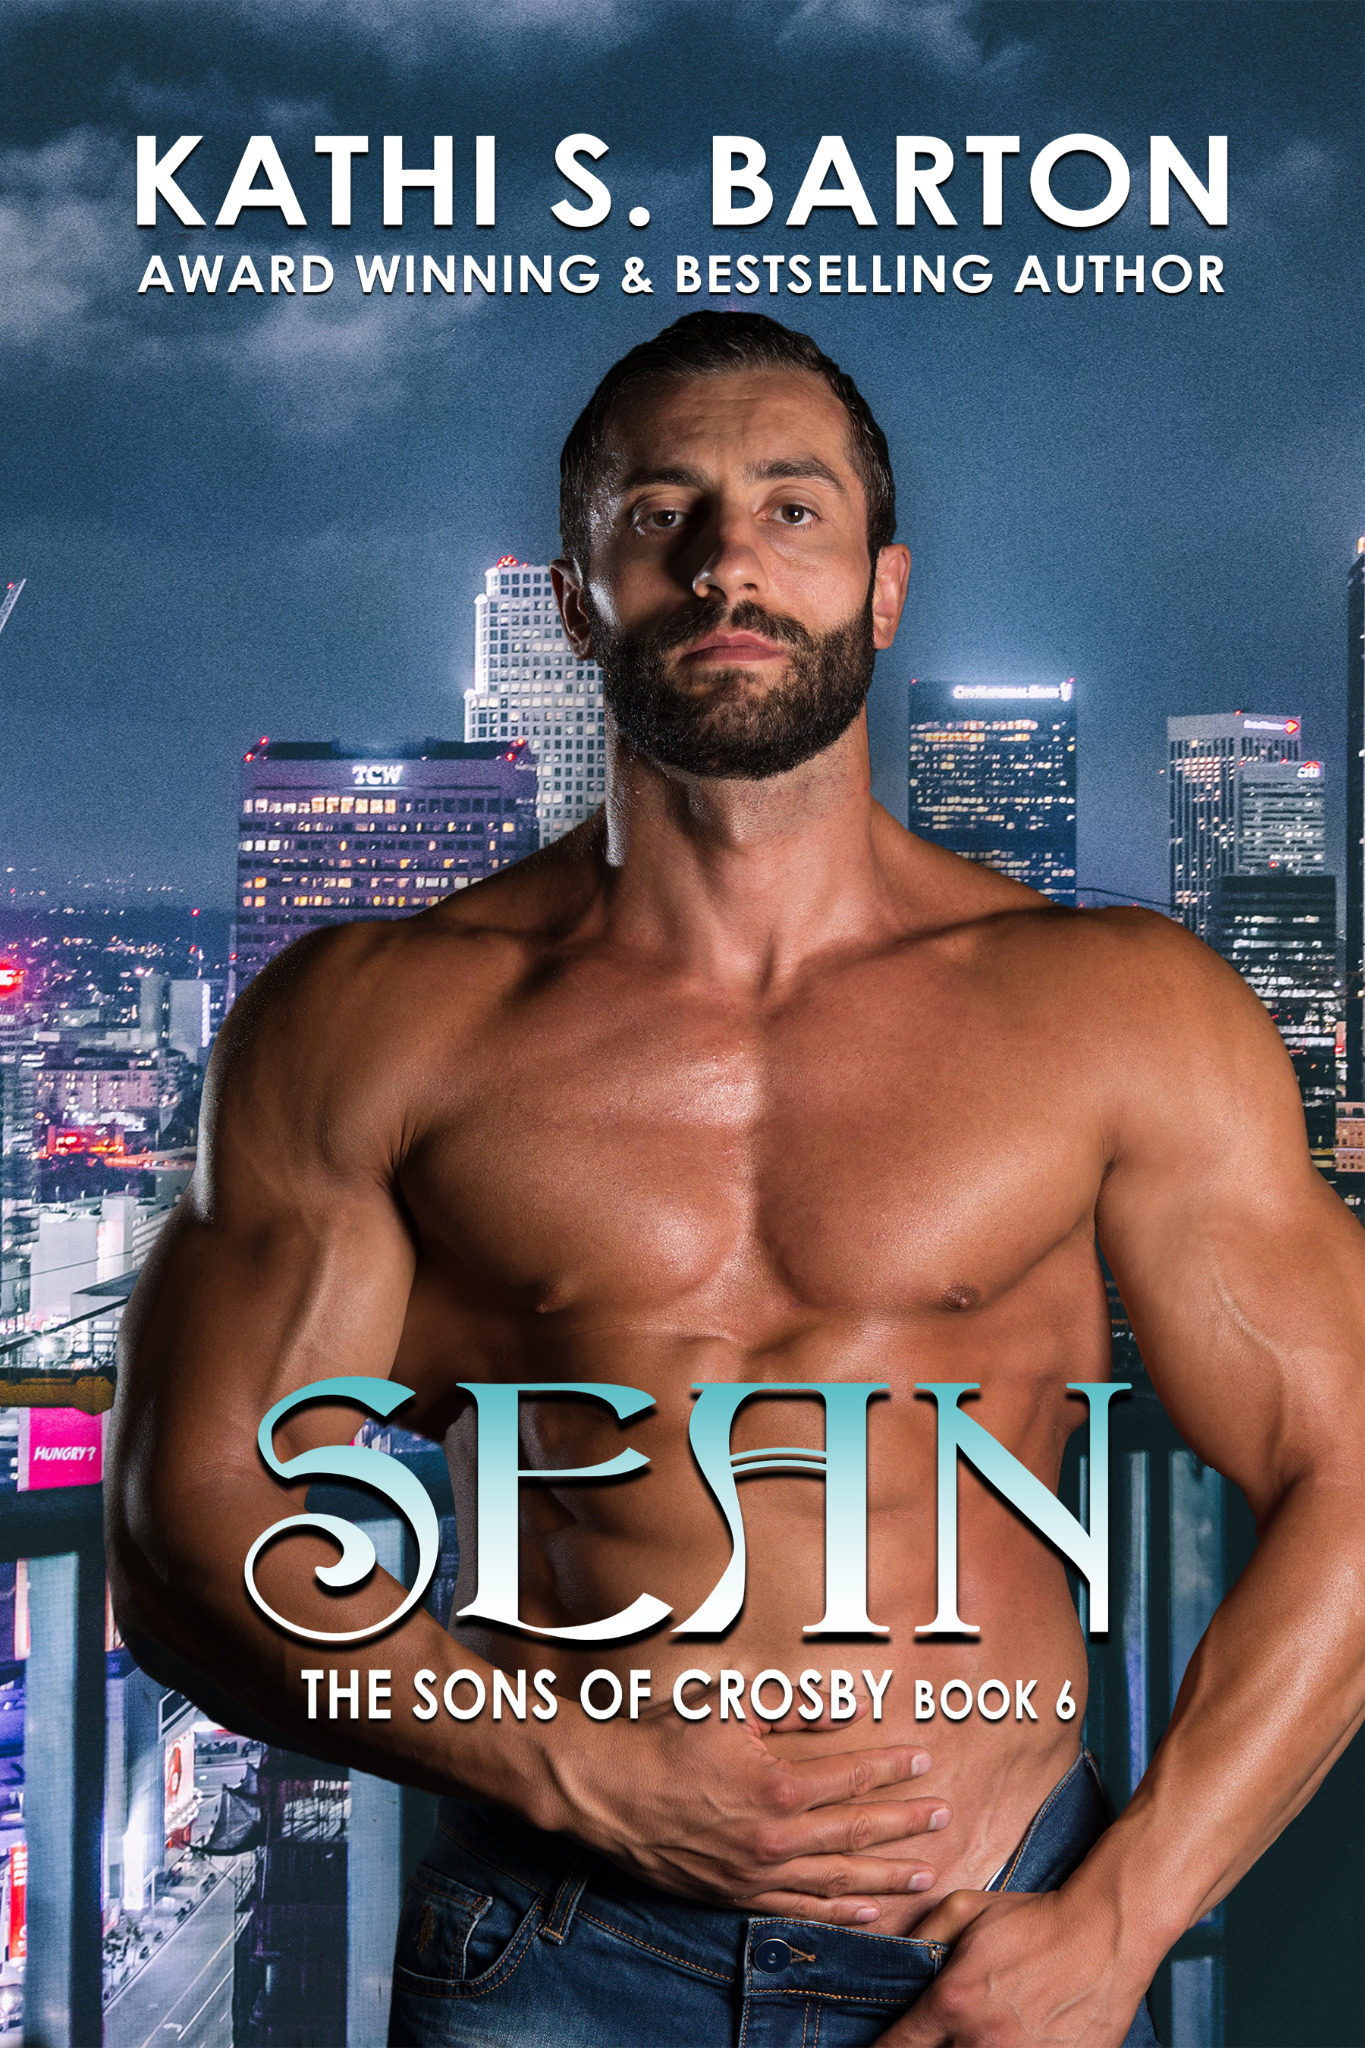 Sean - The Sons of Crosby Book 6